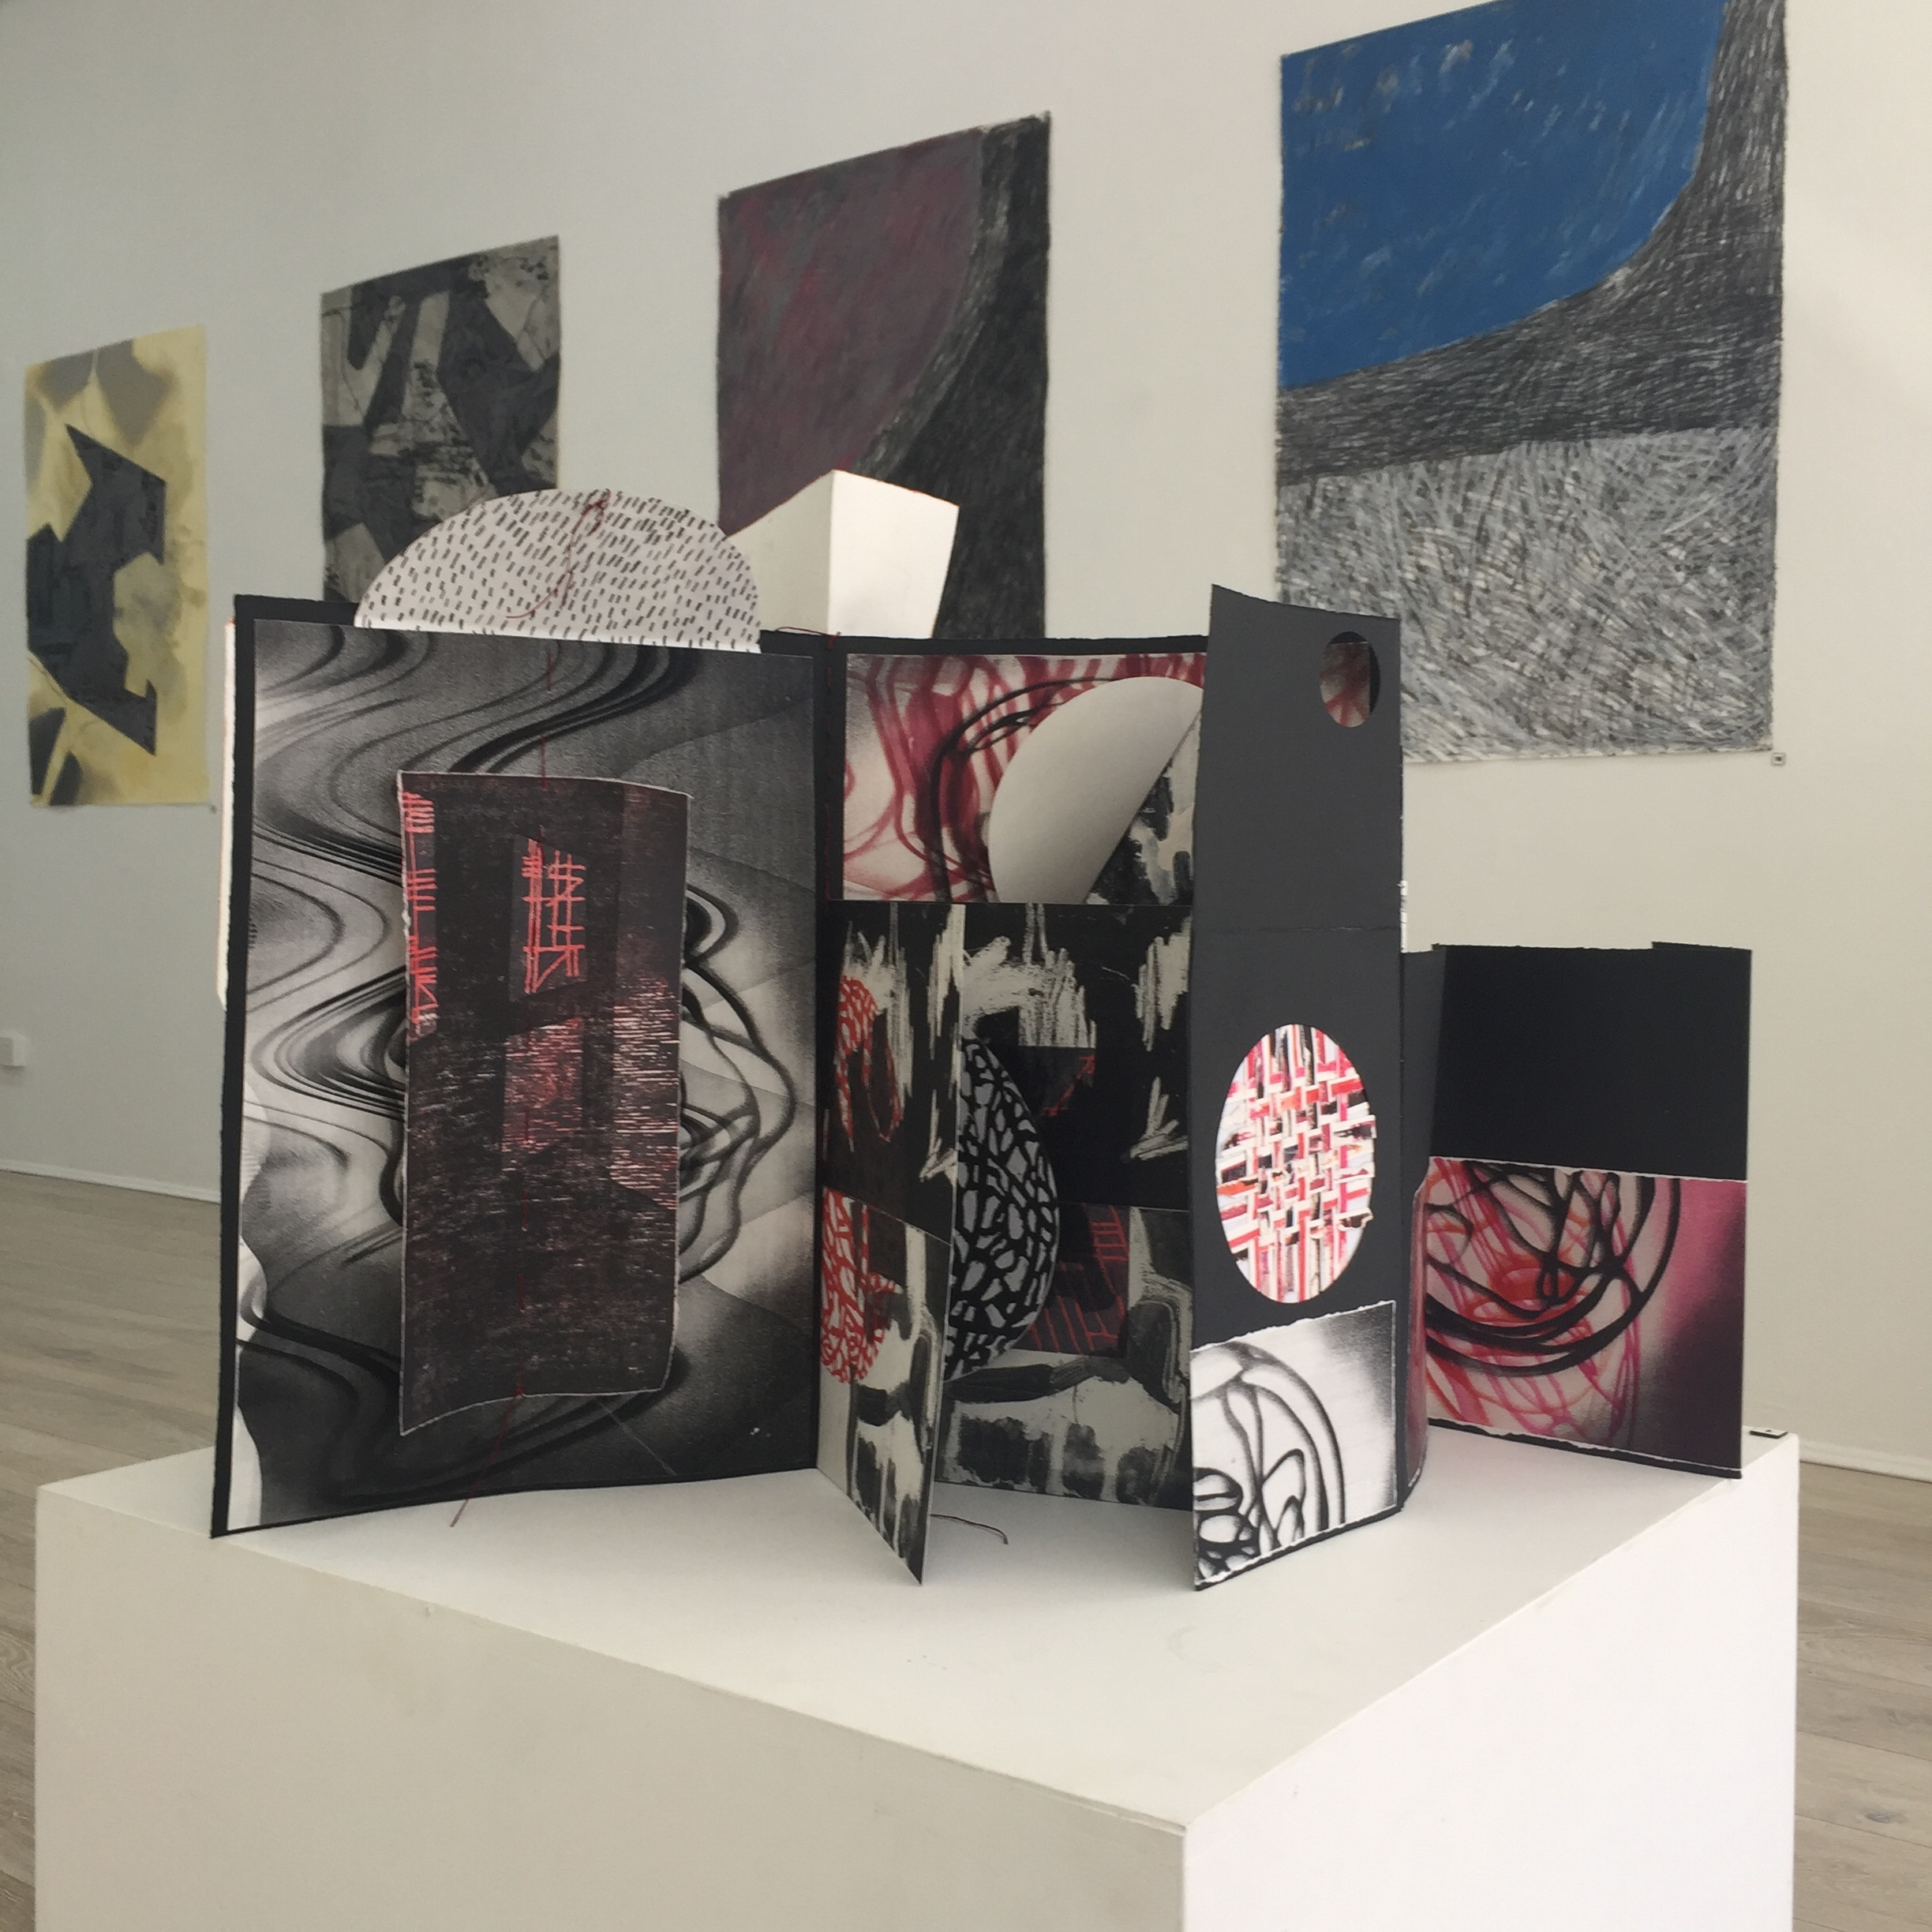 install view of collaborative Artist Book by Caelli Jo Brooker, Alison Smith, Ahn Wells and works on paper on wall Alison Smith and Ahn Wells